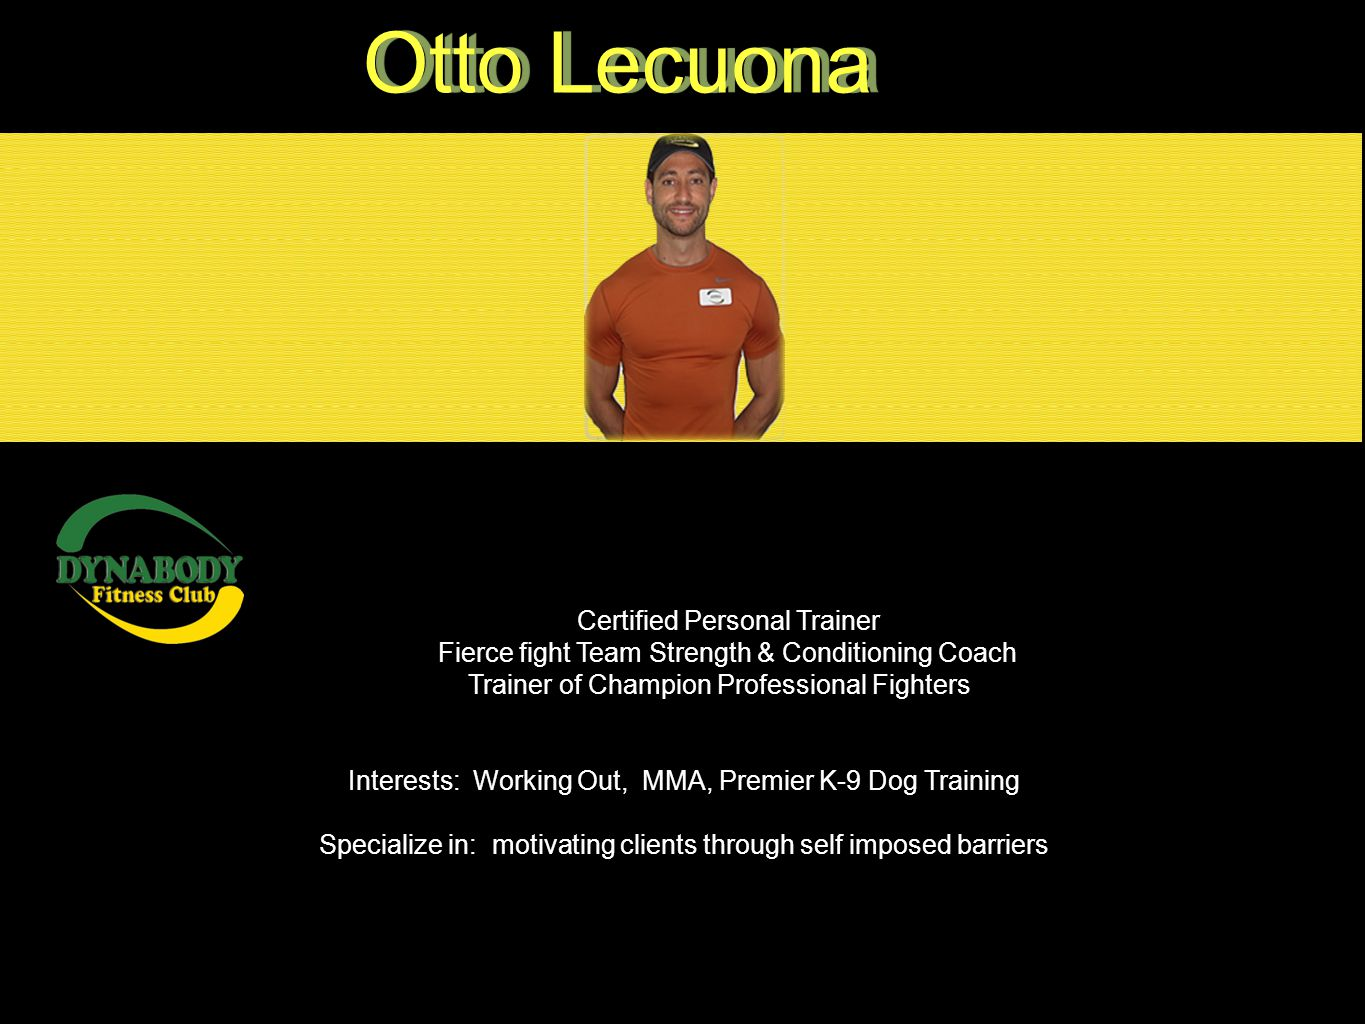 Certified Personal Trainer Fierce fight Team Strength & Conditioning Coach Trainer of Champion Professional Fighters Interests: Working Out, MMA, Prem